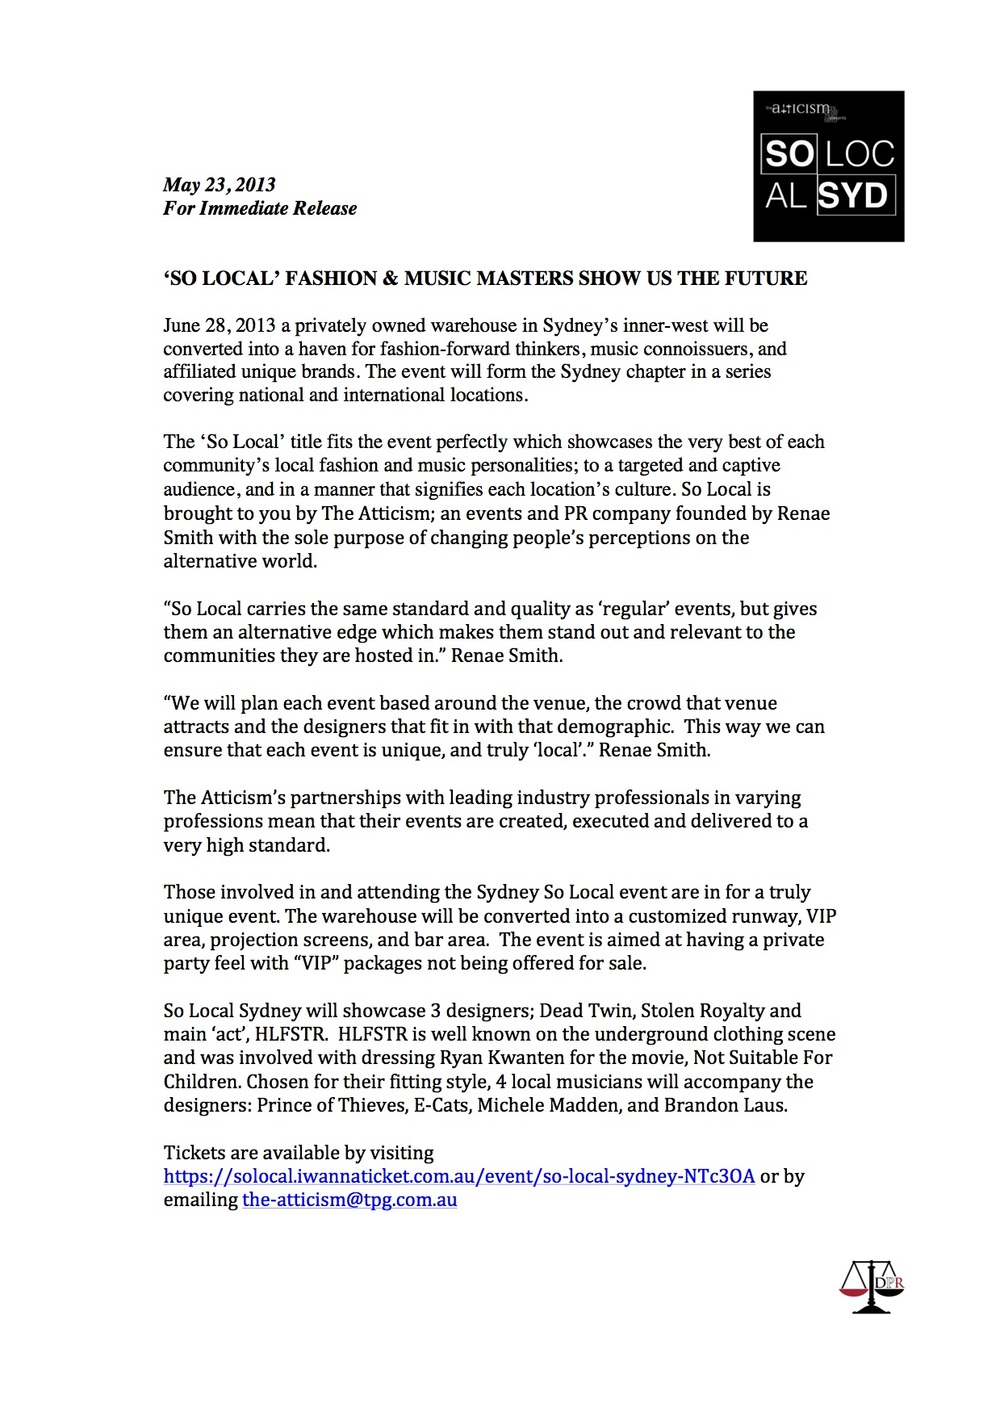 Press Release by Ace the Amara, created for So Local (Australian music and fashion event)